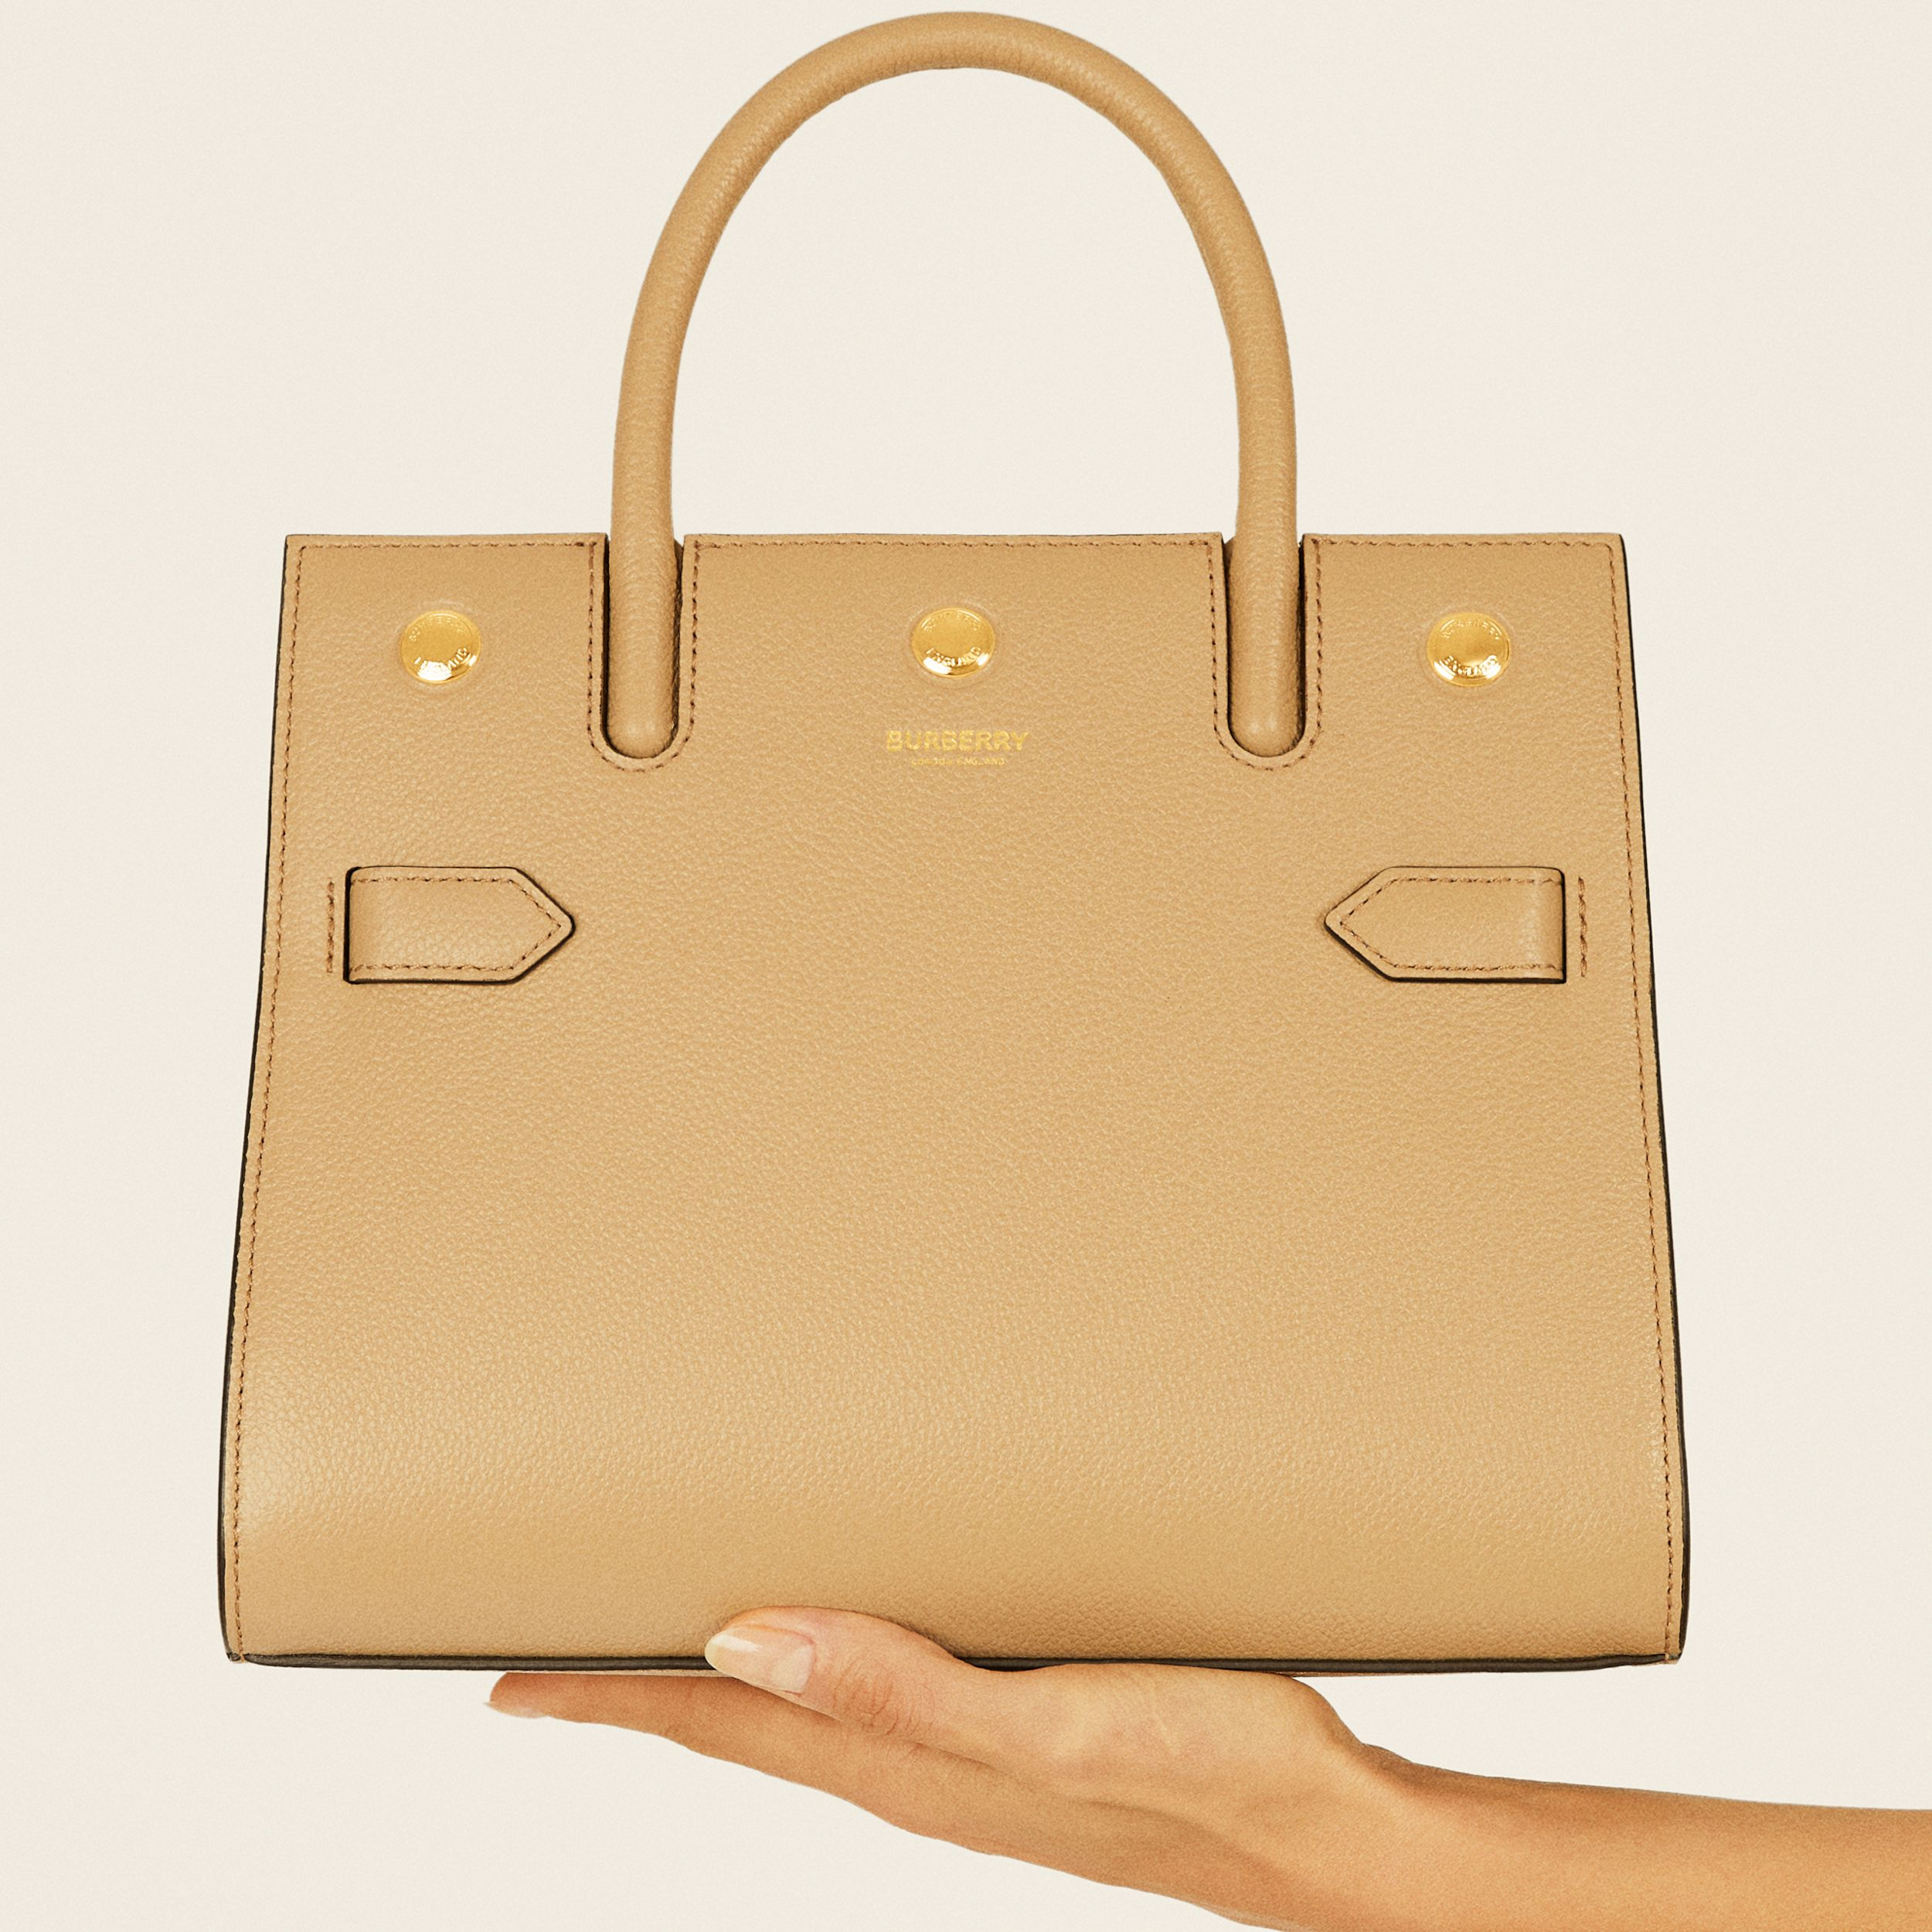 Mini Leather Two-handle Title Bag in Light Beige - Women | Burberry - 2